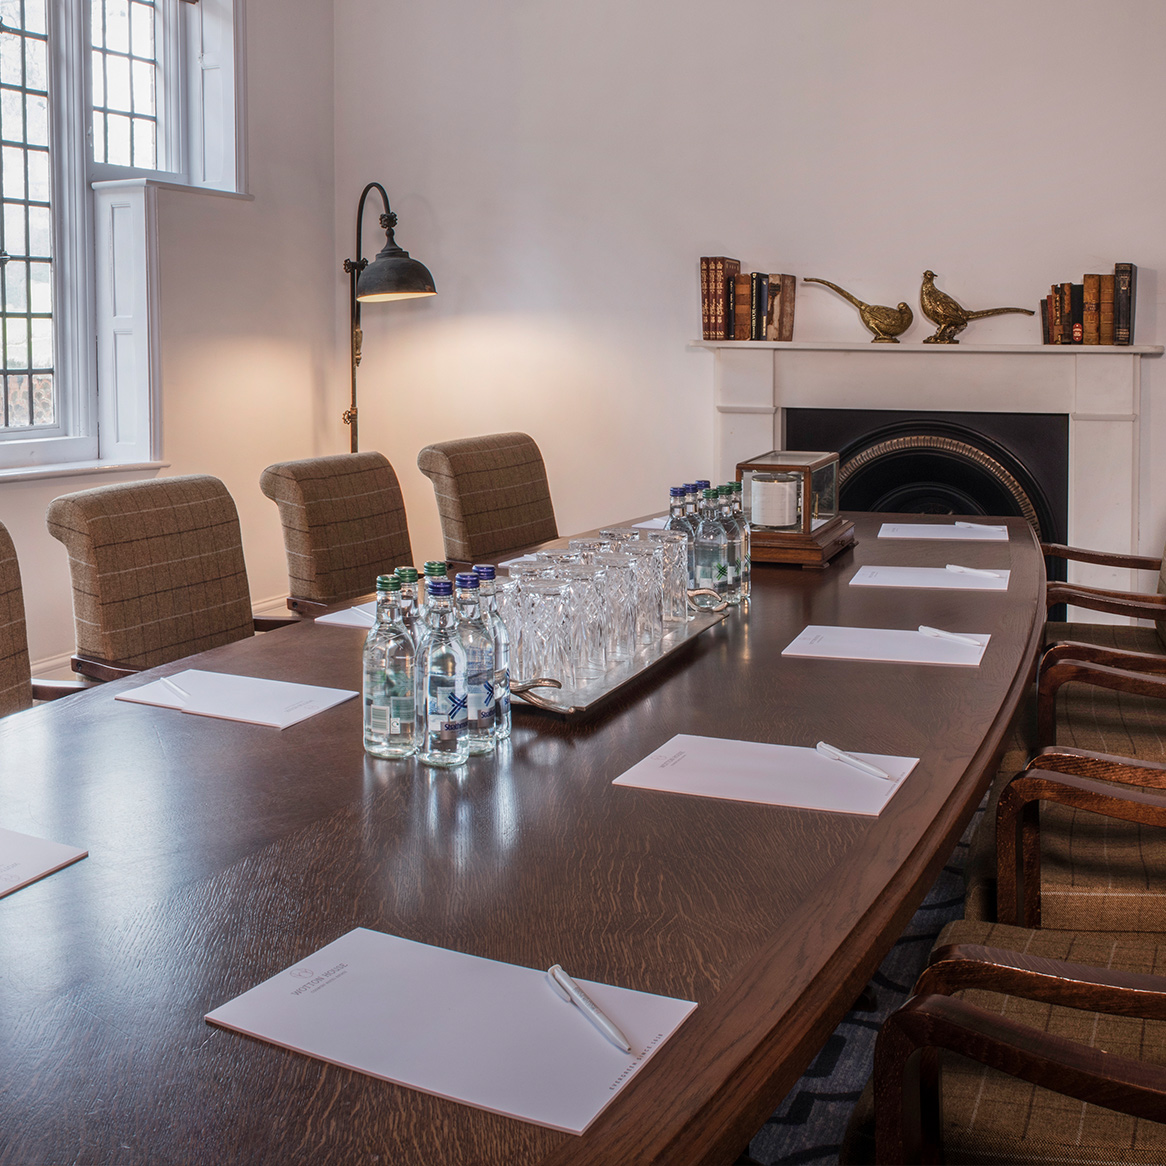 A meeting room with wooden boardroom table